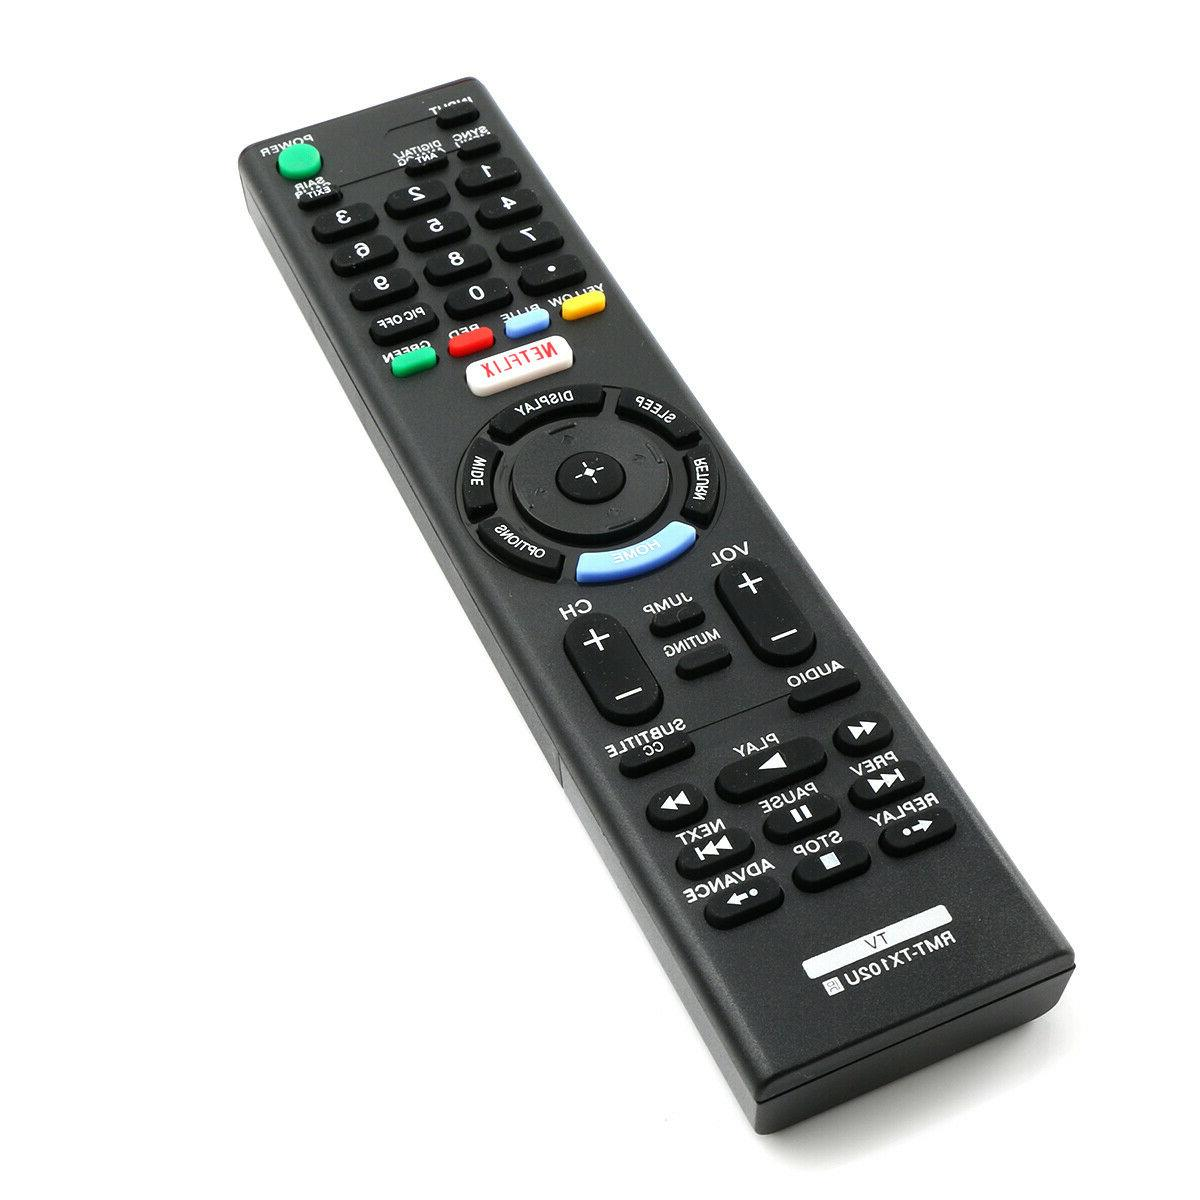 New Replace Remote for Sony TV KDL-48R550C KDL-32R500C KDL-3